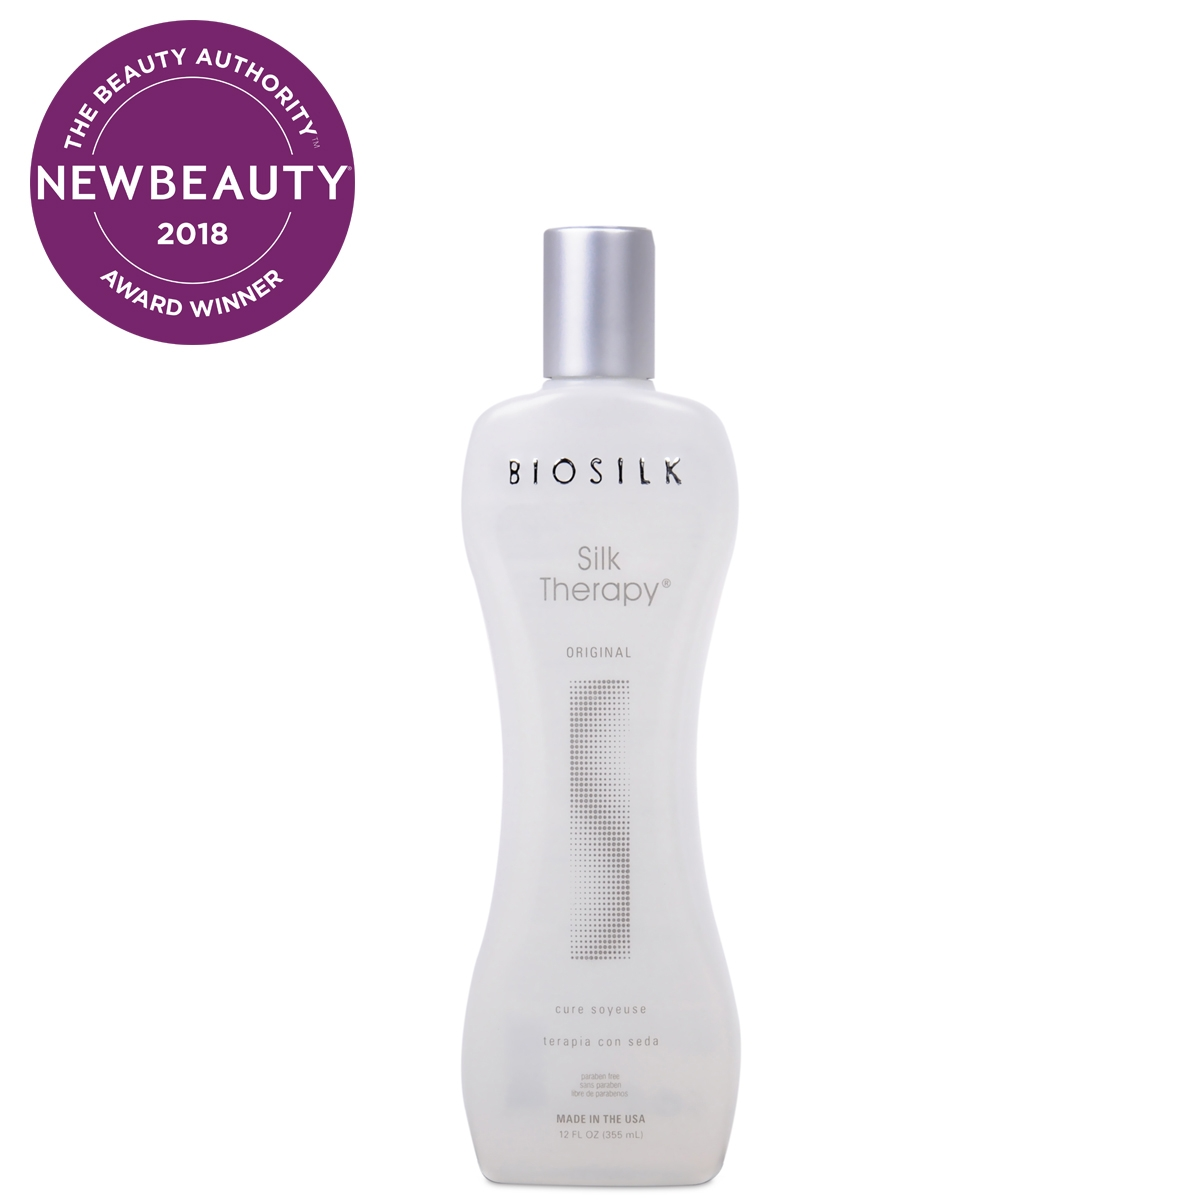 Hairstyles To Look Effortlessly Chic, Easy Ponytail Hairstyles To Look Effortlessly Chic – Features BioSilk Smoothing Serum